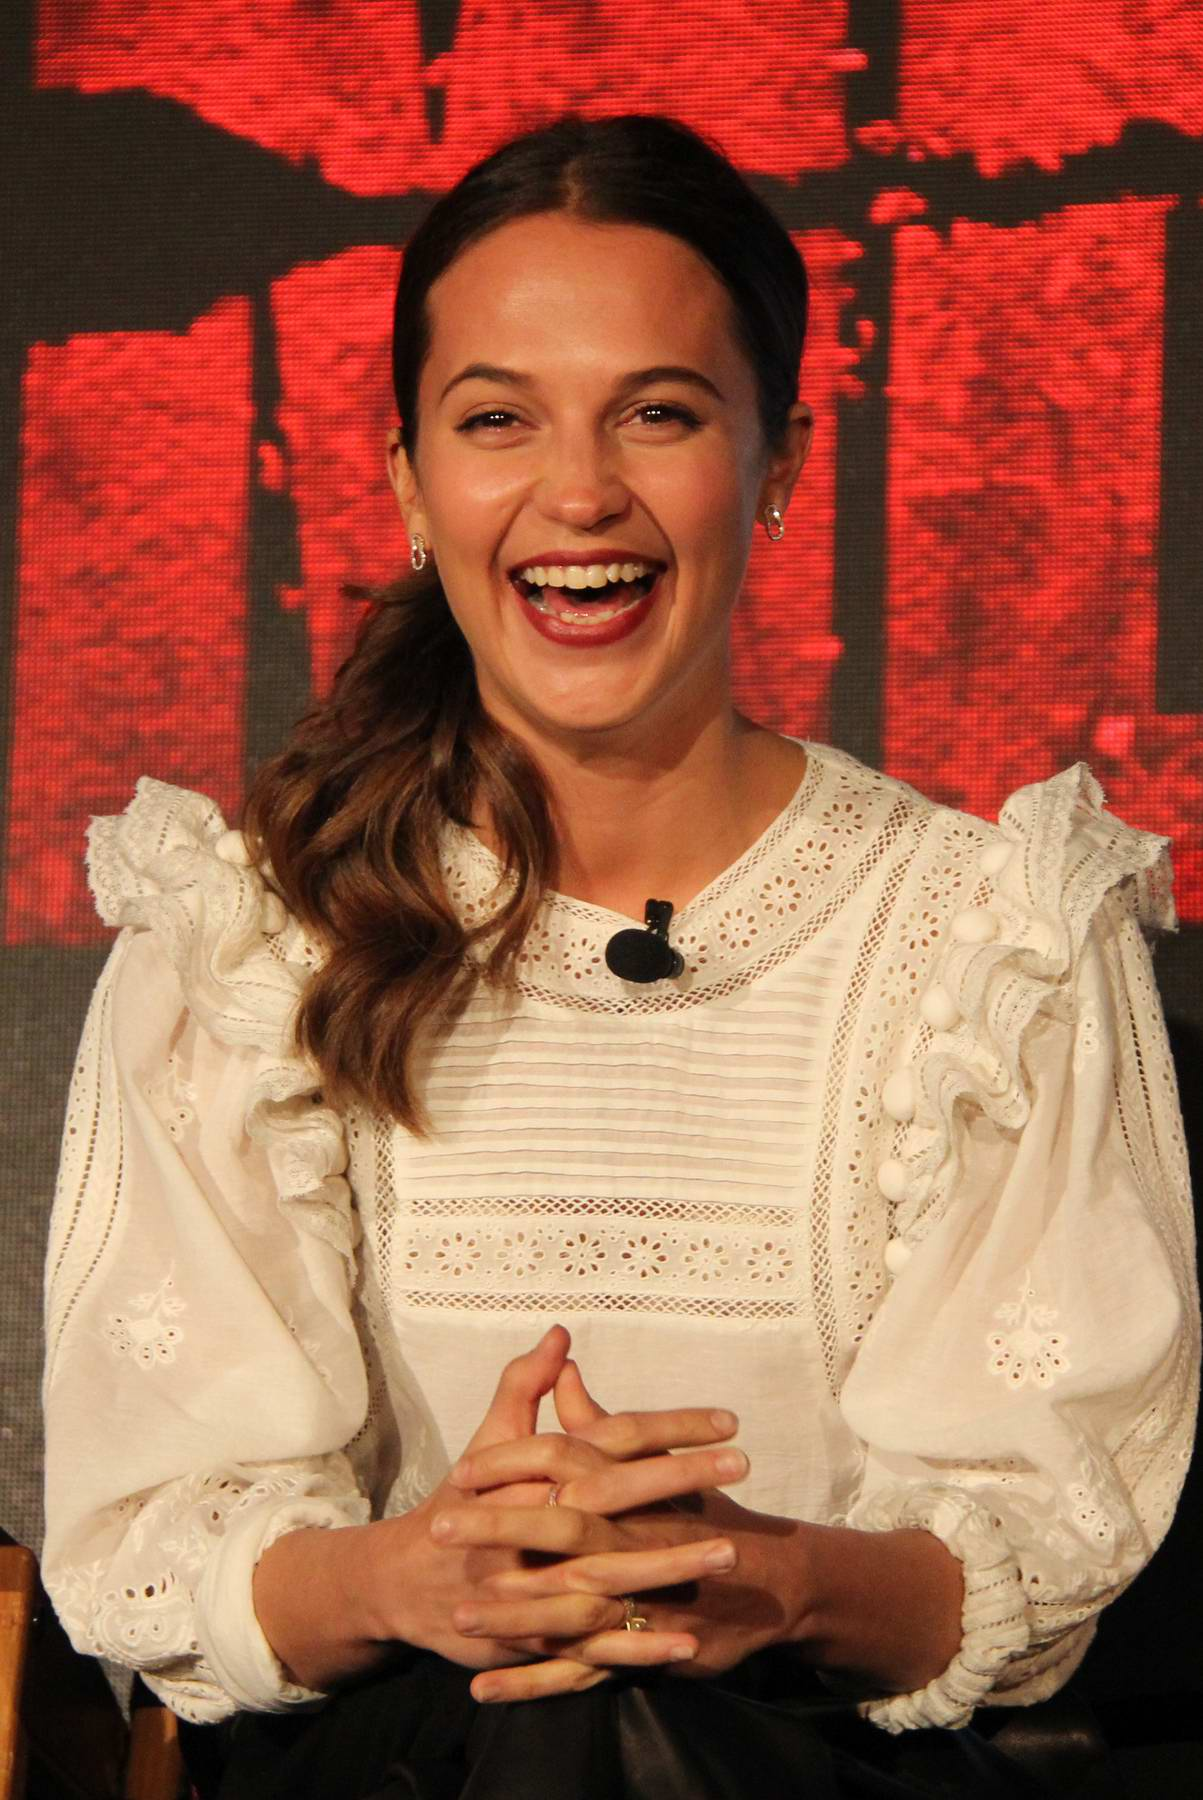 Alicia Vikander attends the 'Tomb Raider' Press Conference in Los Angeles